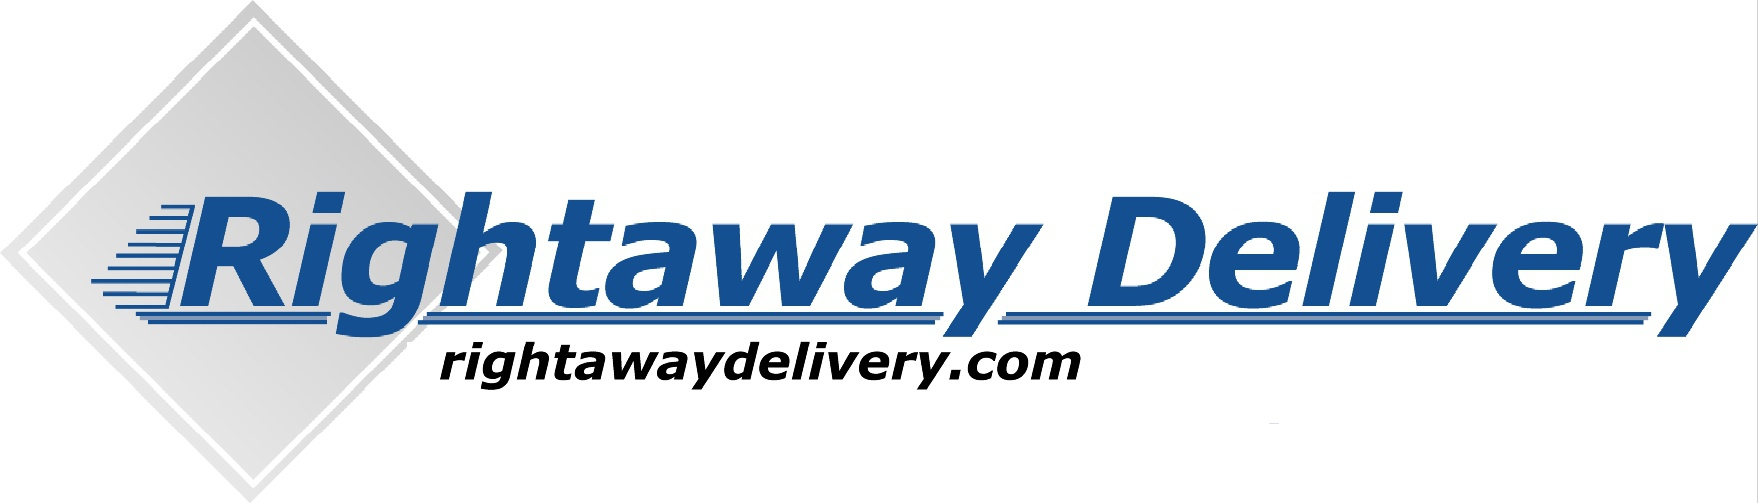 Logo for Rightaway Delivery LLC